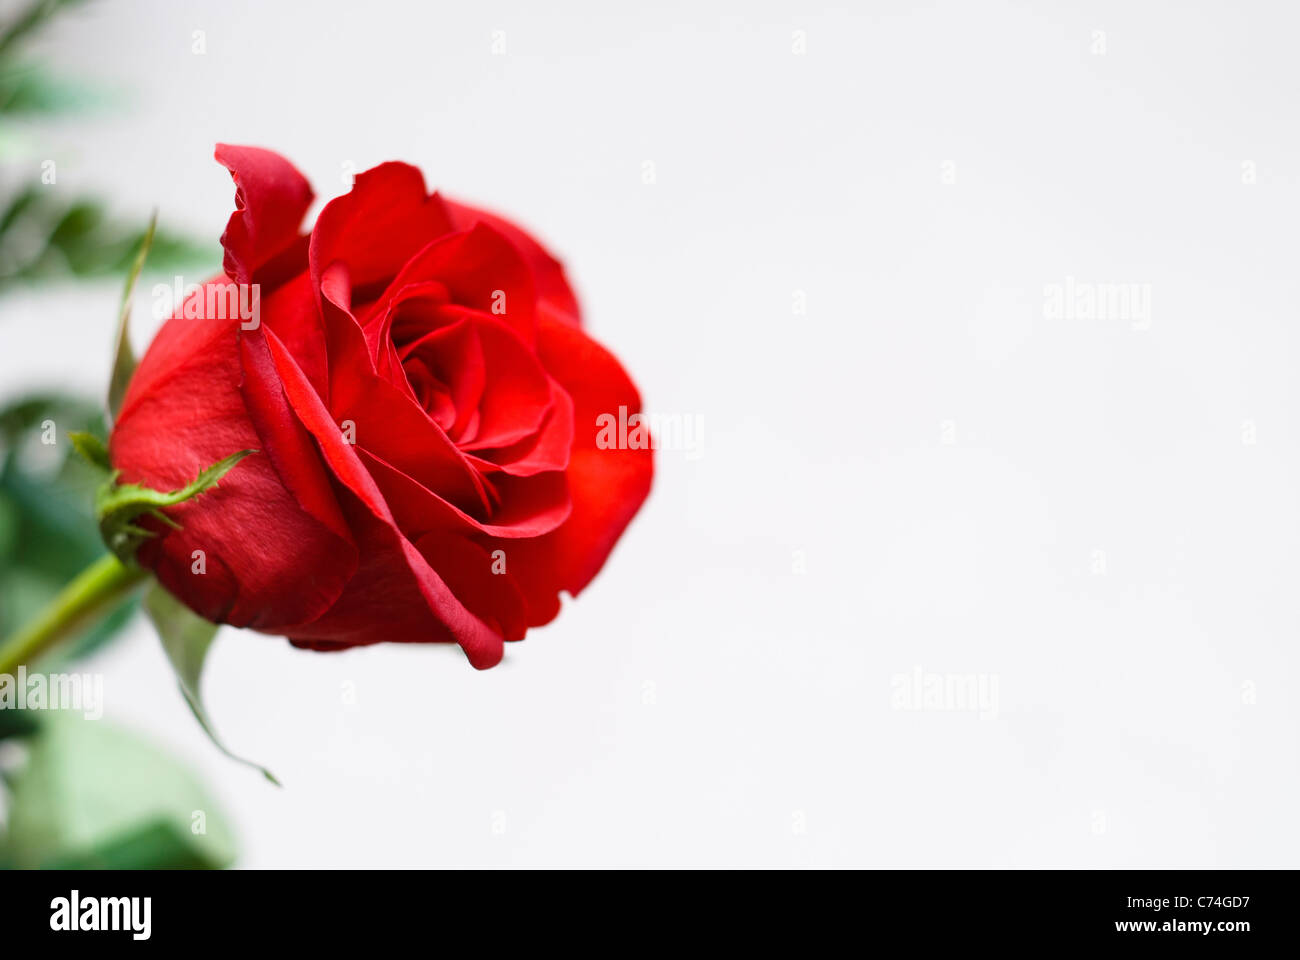 Perfect single red rose against neutral background - Stock Image